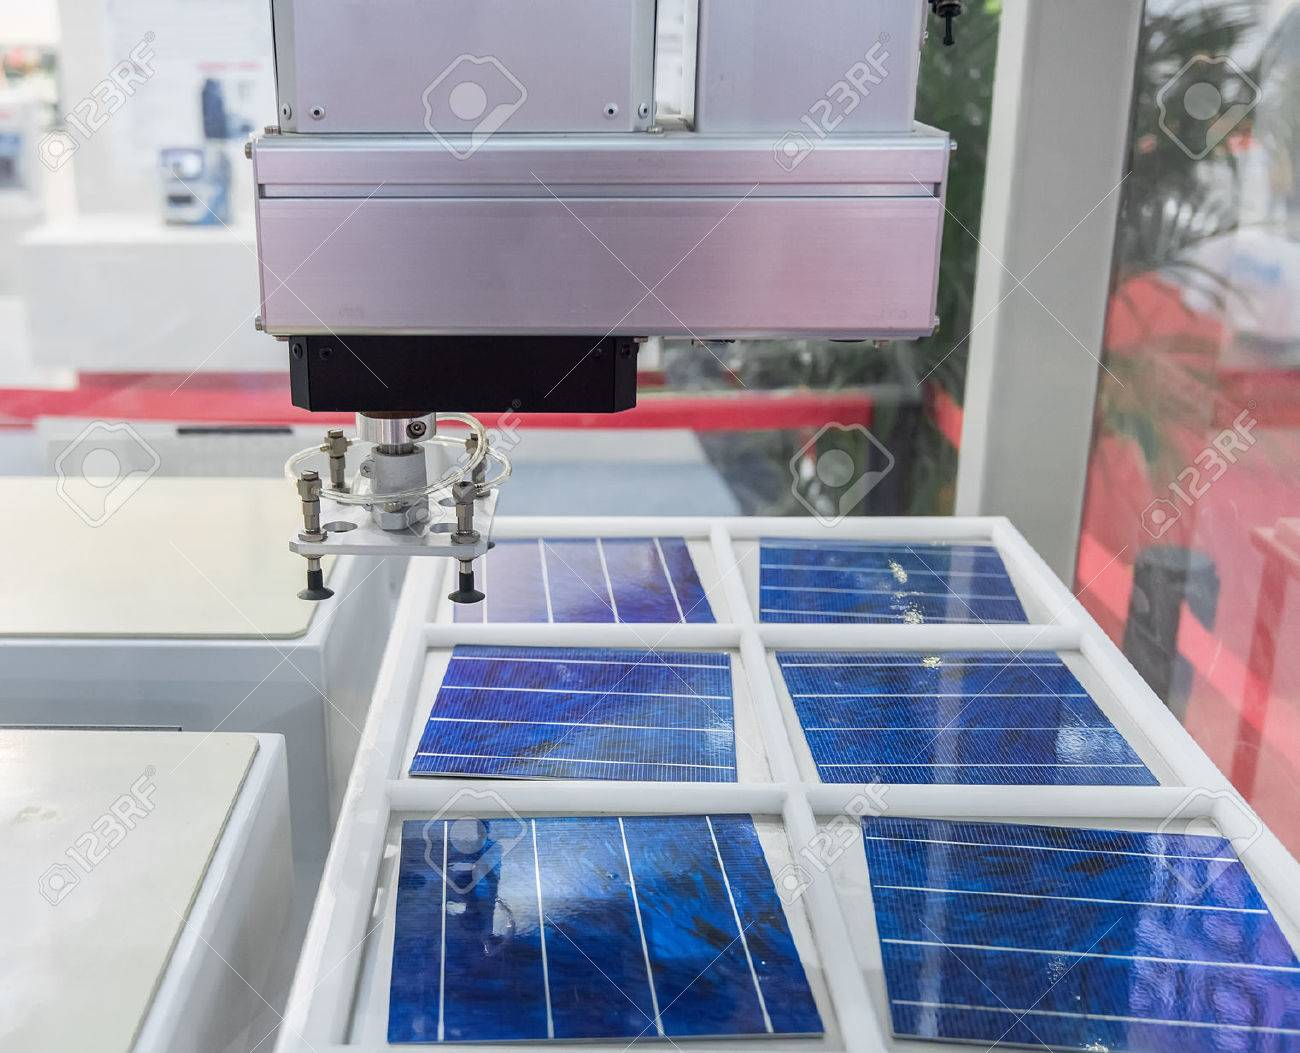 production of solar panels, Industrial robot working in factory,Conveyor Tracking Controler of robotic hand. - 59453036